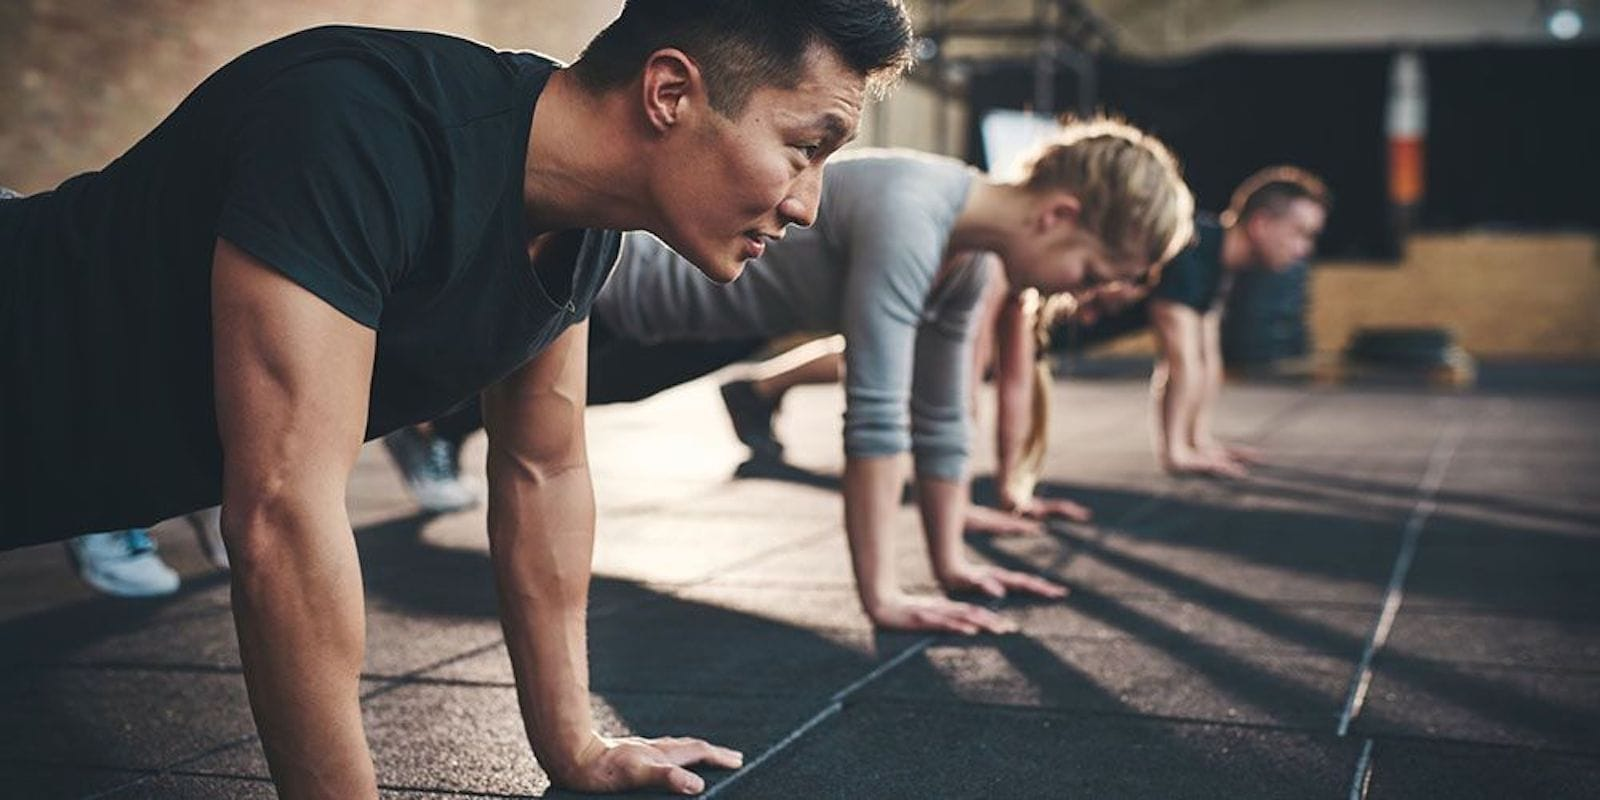 Staying healthy can be tough, so Fitterclub makes customized nutrition plans and workout routines that are accessible anywhere you go.